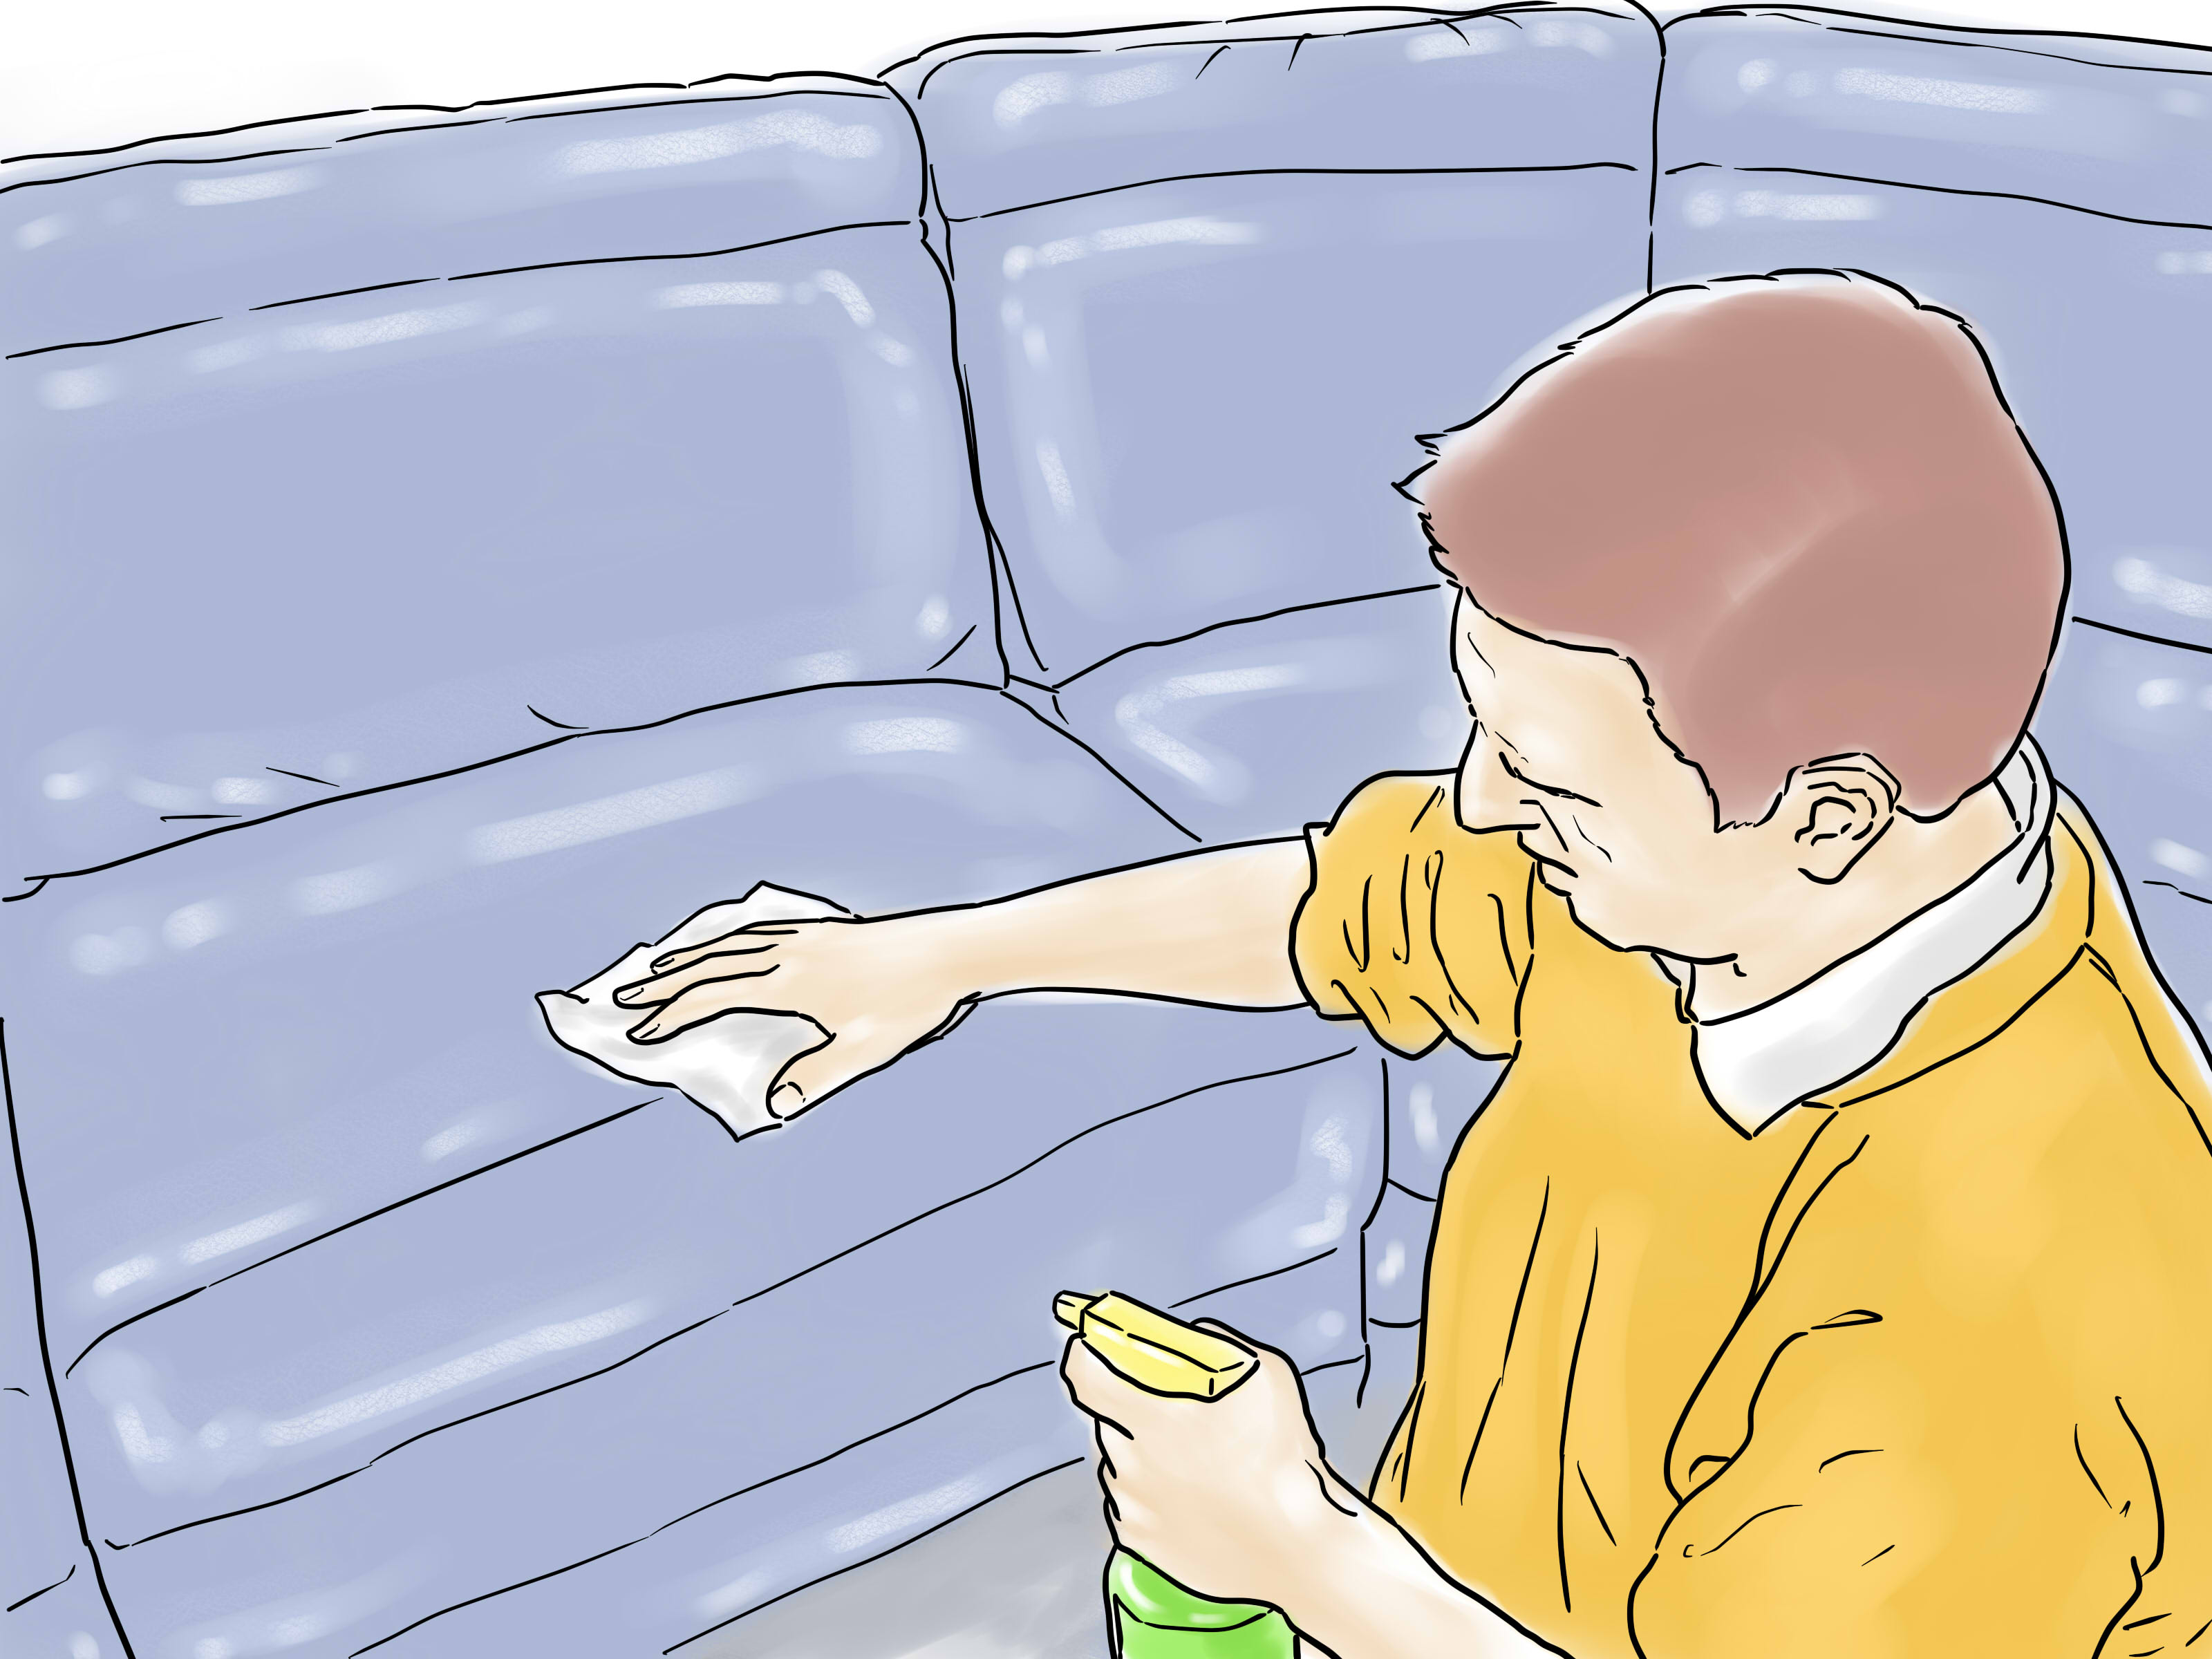 how to remove pen ink from white leather sofa grey blue rug 3 ways stains wikihow